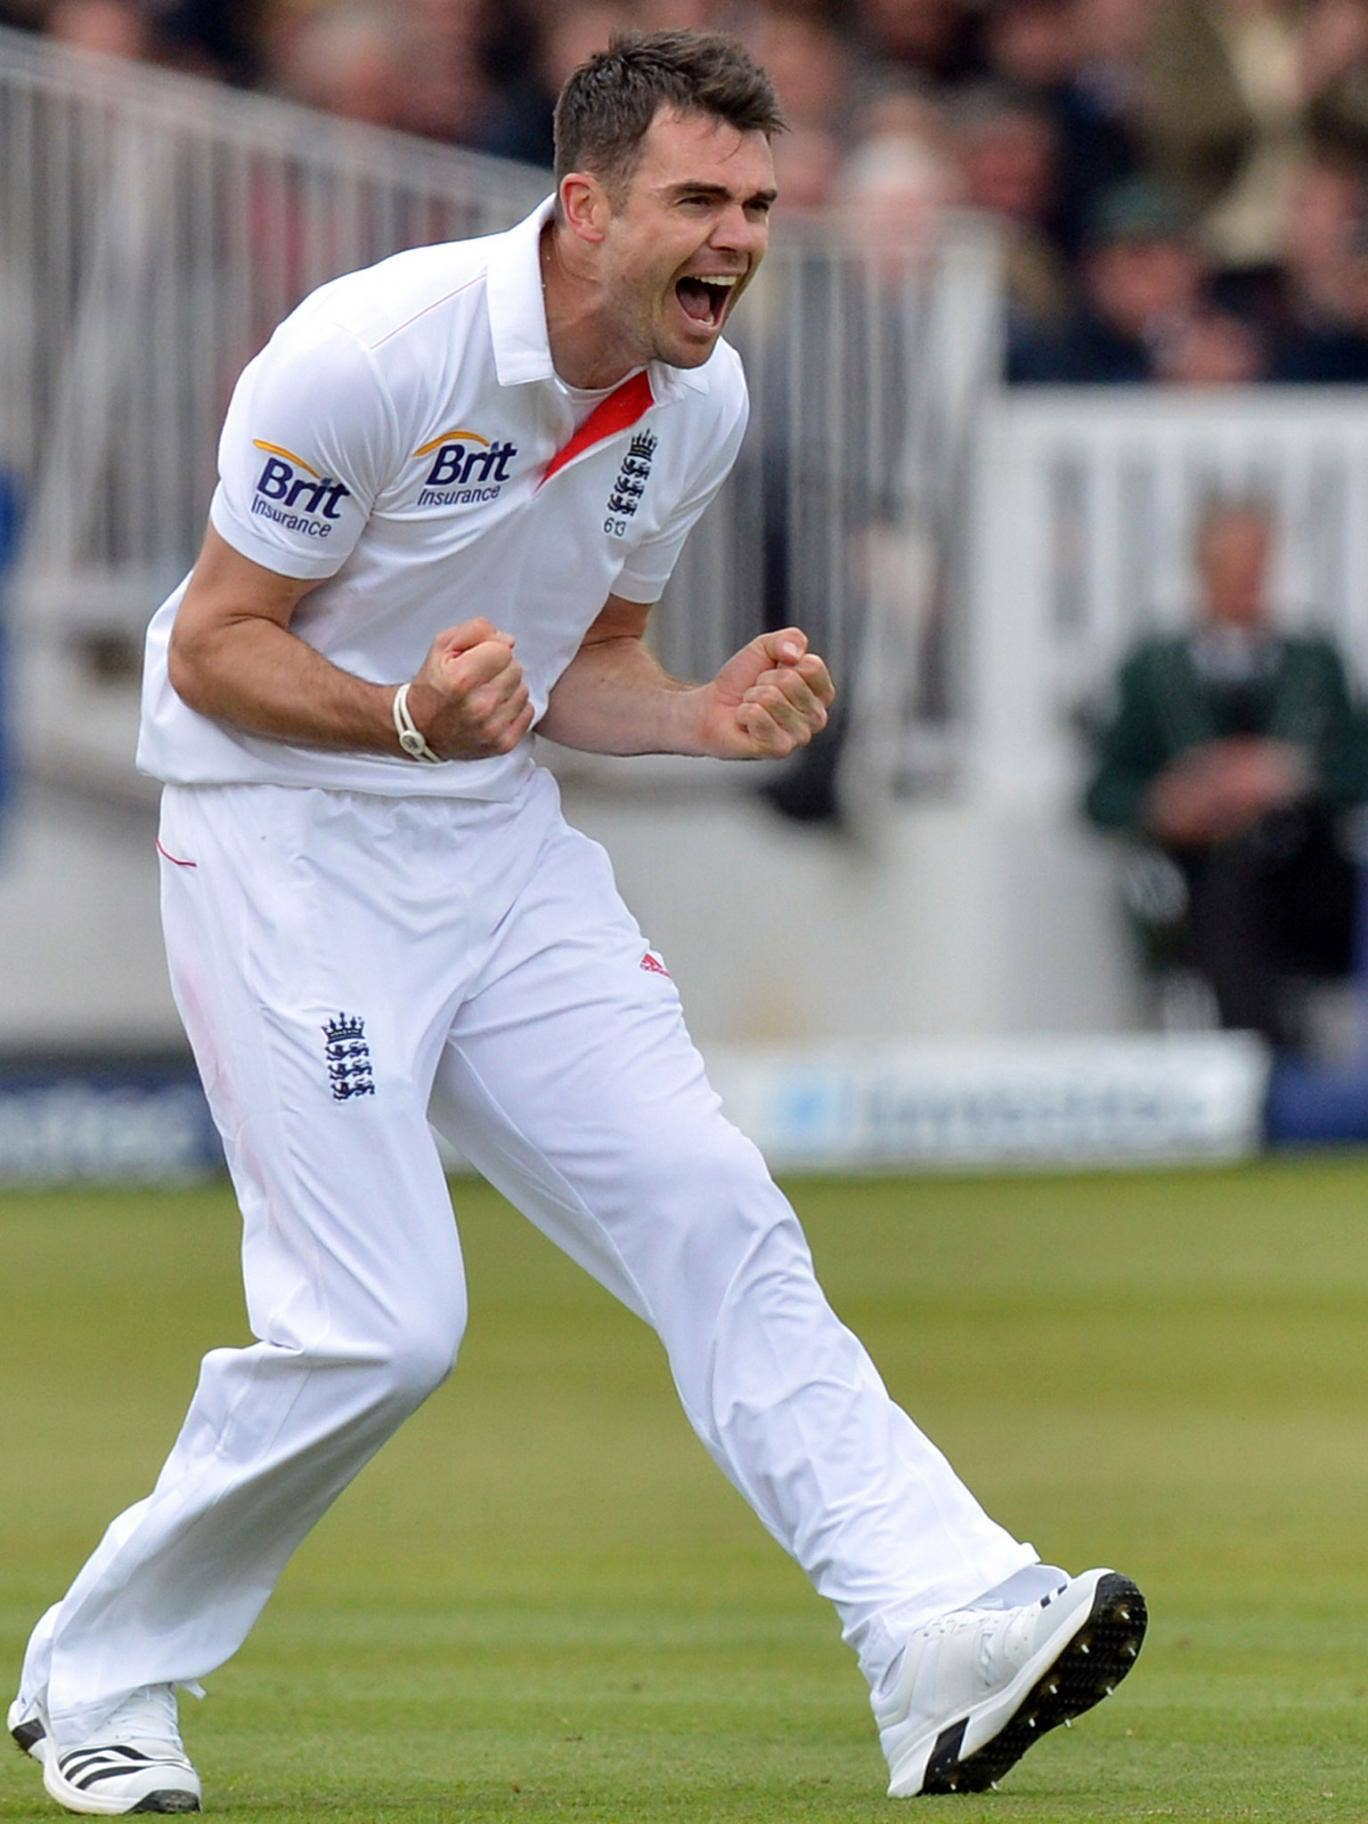 James Anderson celebrates taking his 300th test wicket, that of New Zealand's Peter Fulton, caught by Graeme Swann for 2 during the first test at Lord's Cricket Ground, London